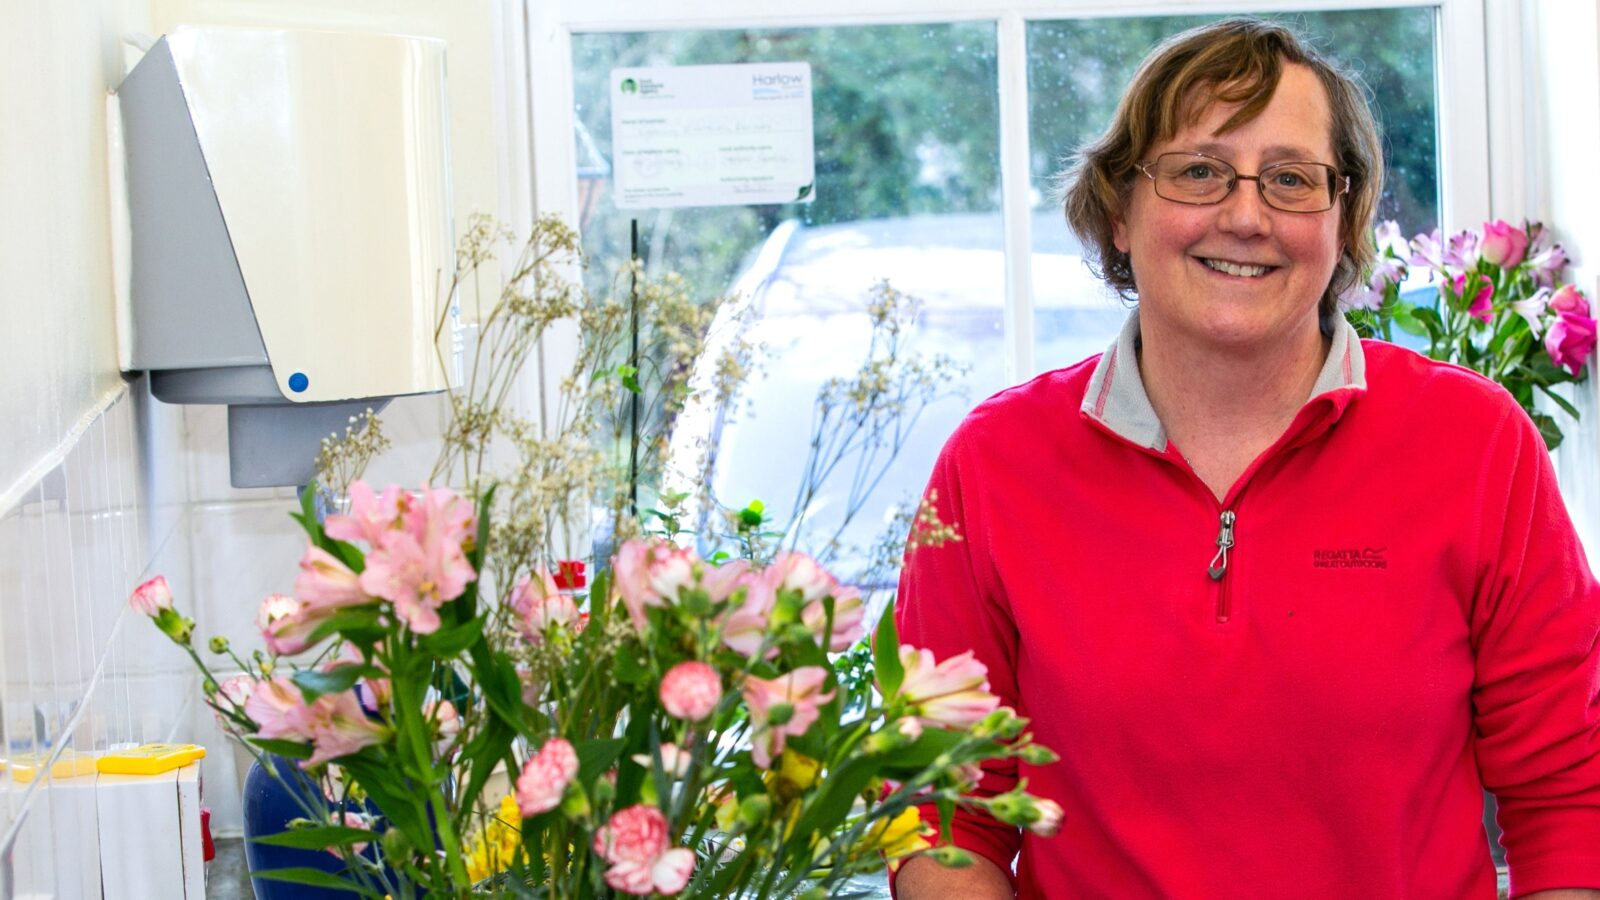 From flower arranging to cookery – it all adds up! Alison's volunteering story